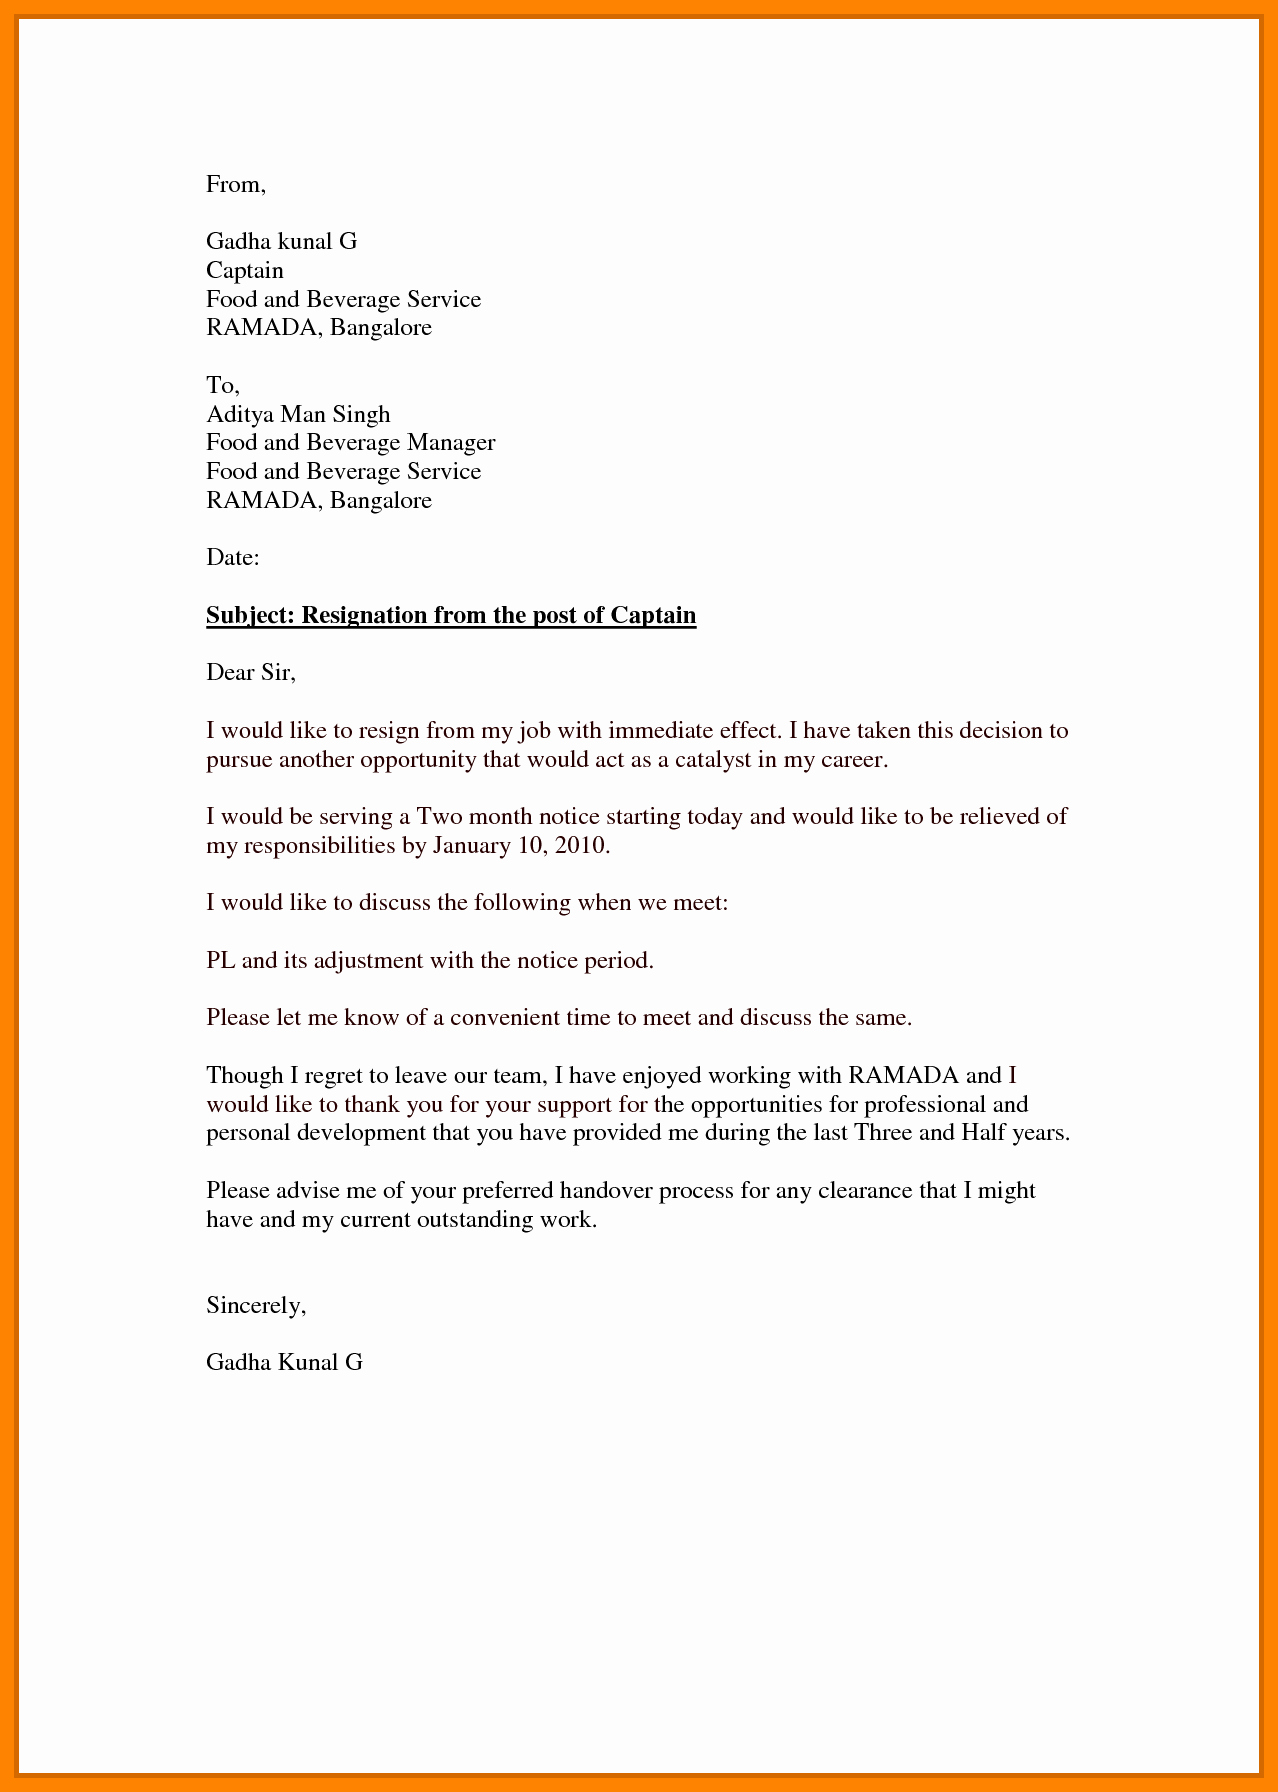 Resignation Letter Effective Immediately New 7 Effective Immediately Resignation Letter